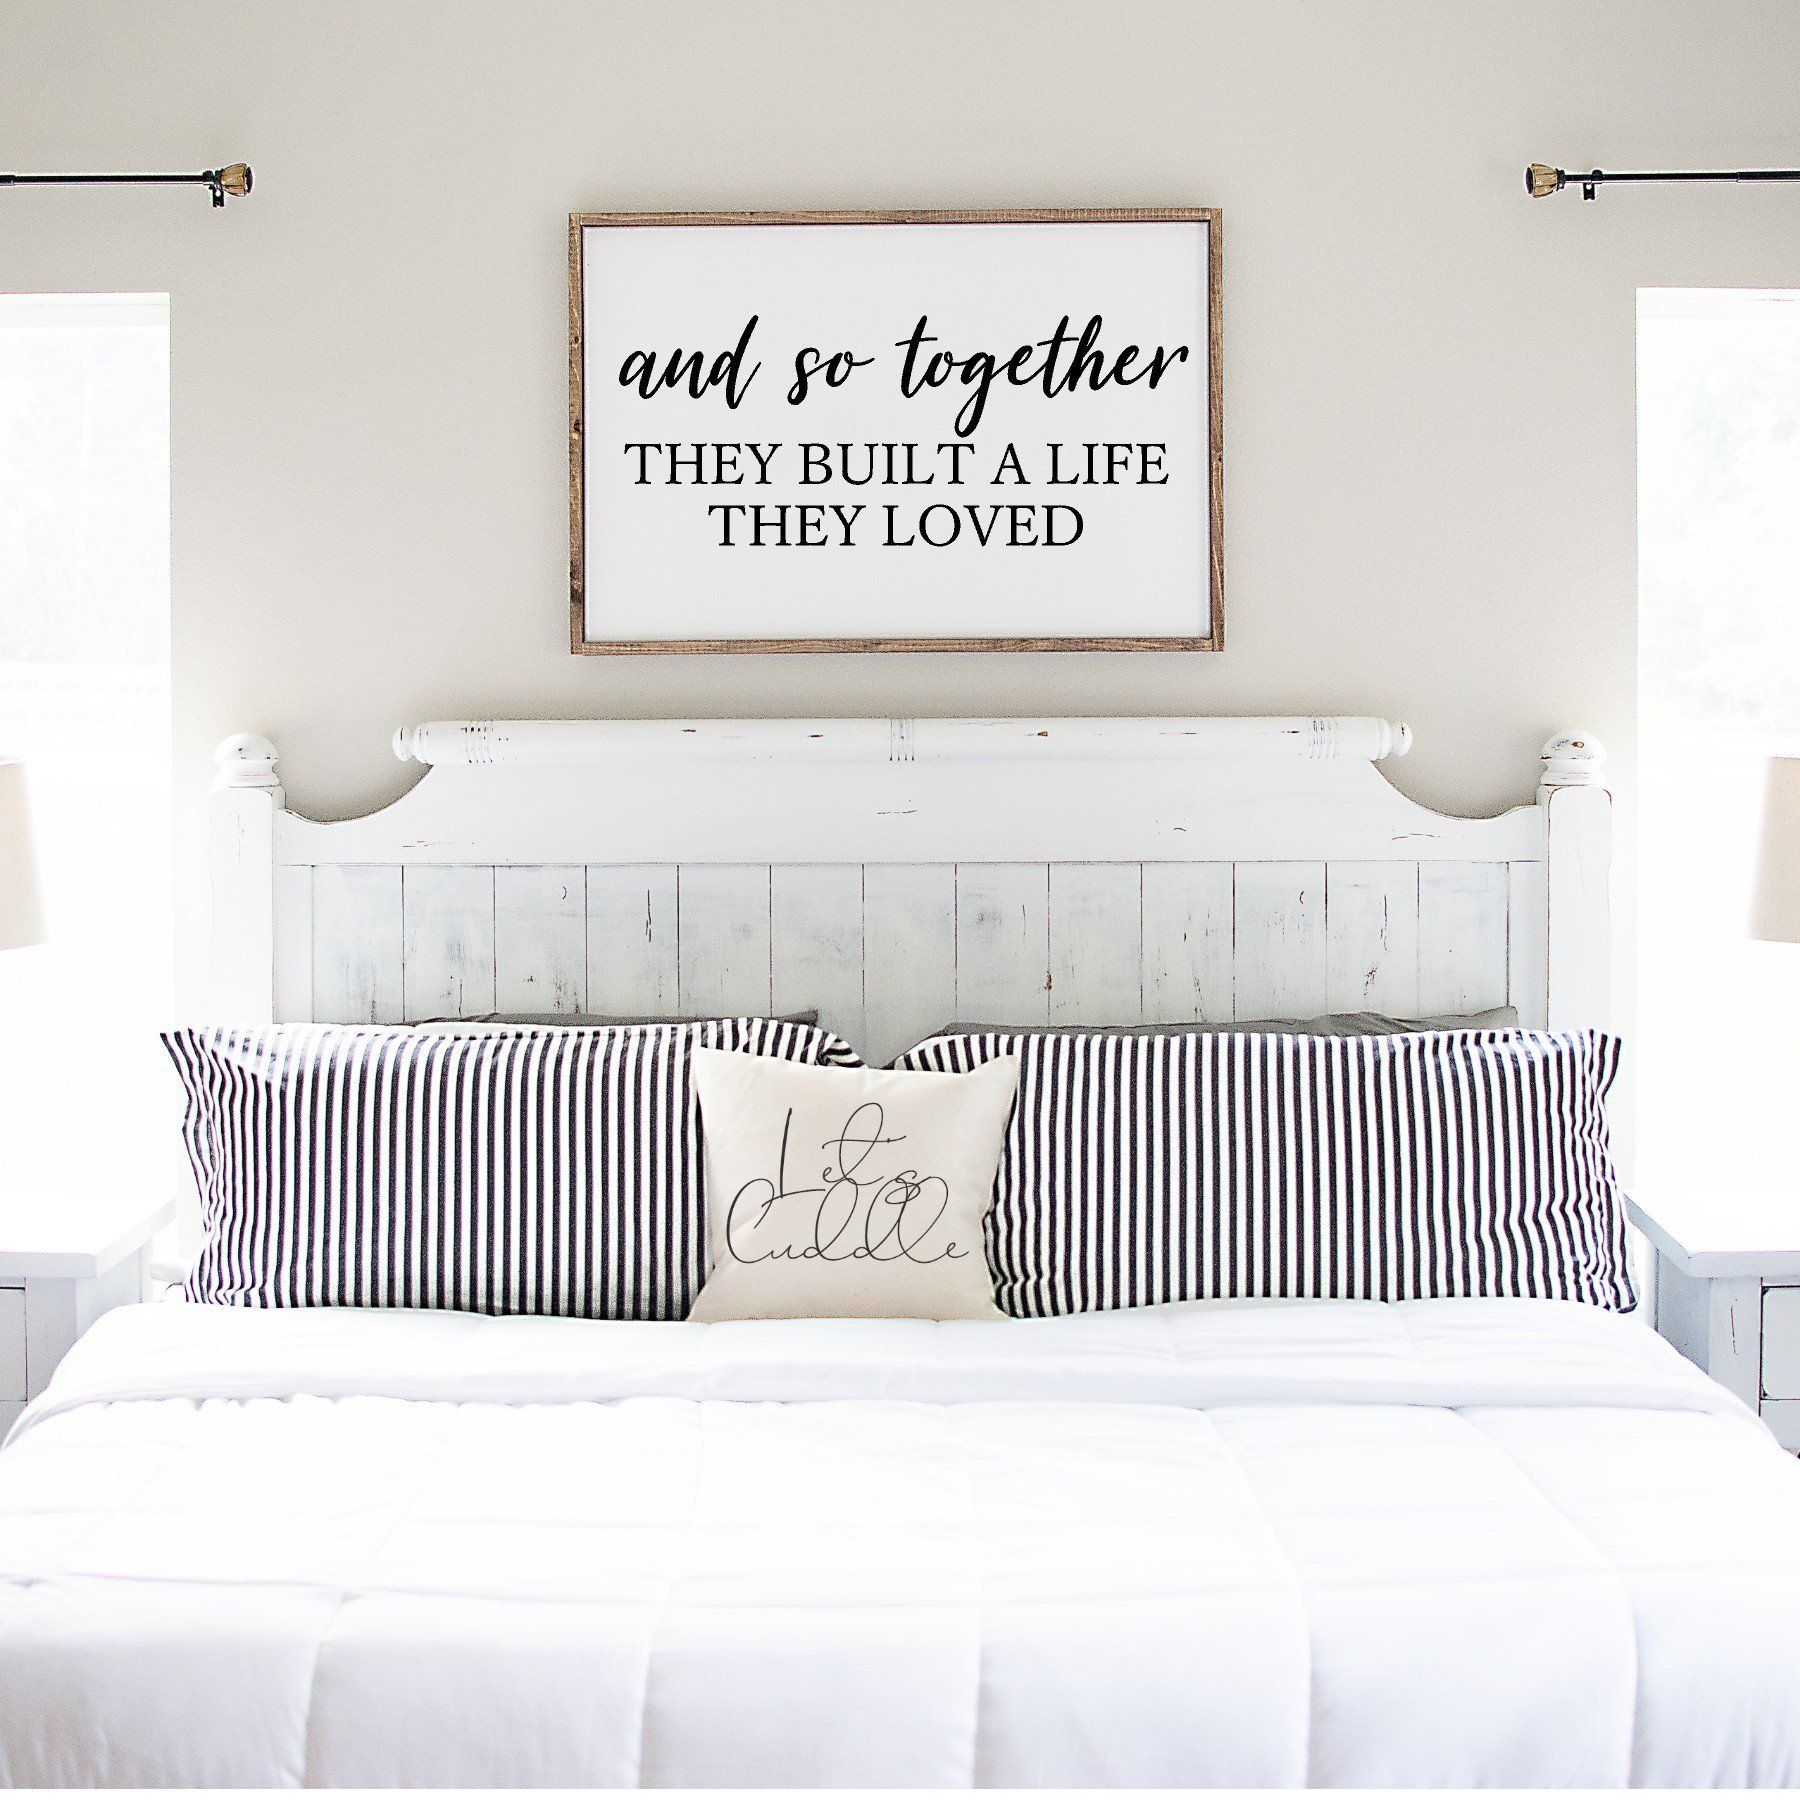 Wood Sign And So Together Que Sign Inspirational Quote Sign Farmhouse Style Signote Framed Wood Master Bedrooms Decor Wall Decor Bedroom Bedroom Signs